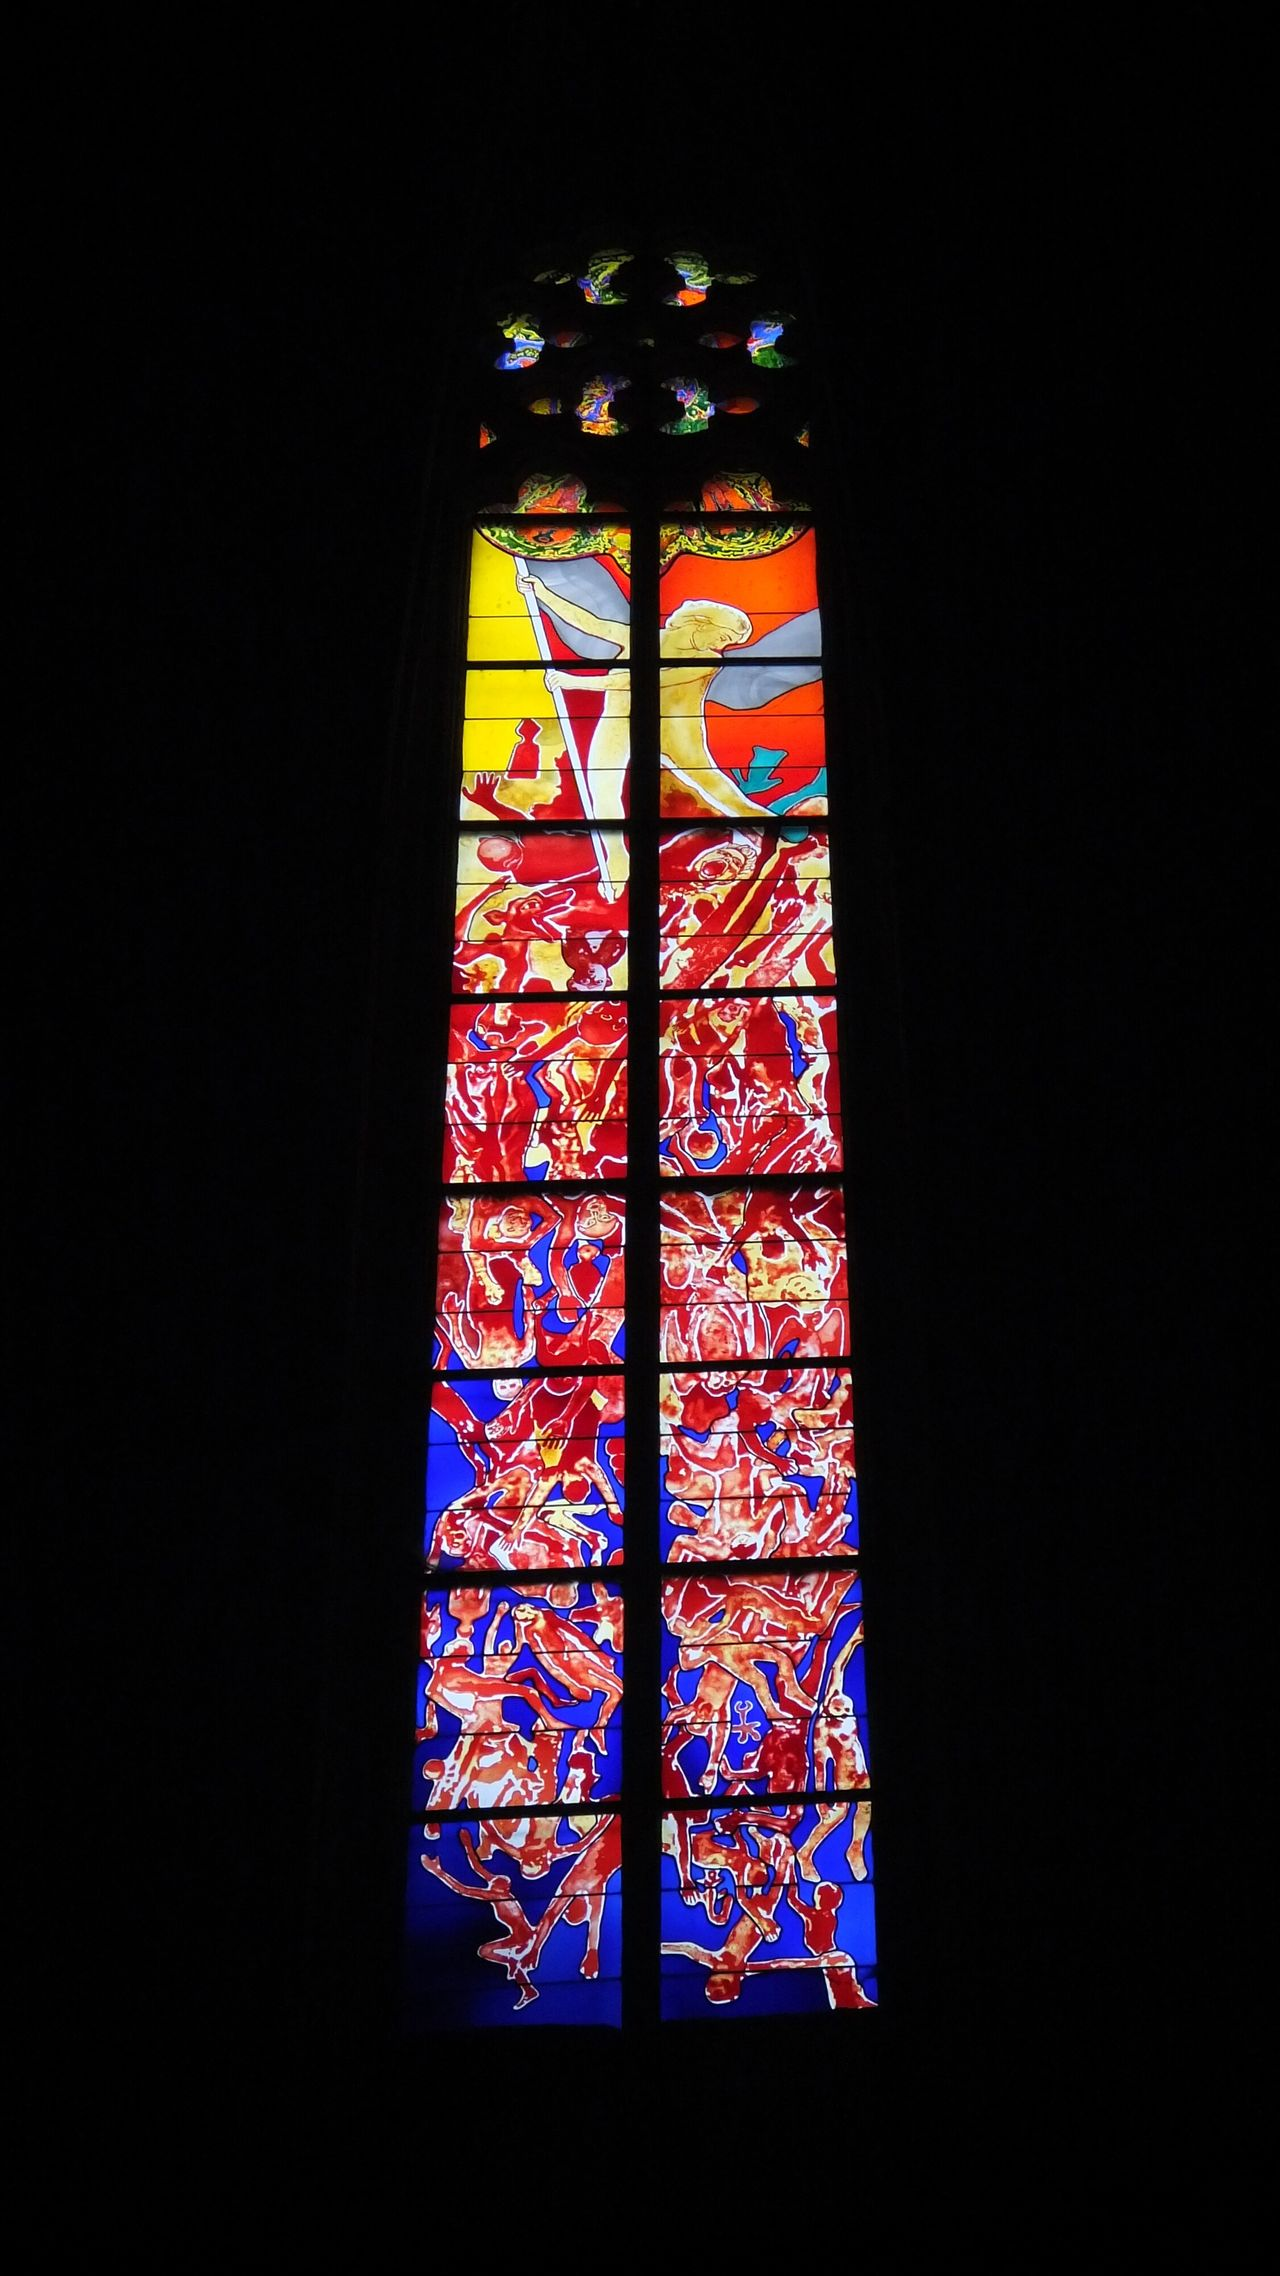 Cathédrale De Rodez Cathedral Vitrail Vitraux Stained Glass Window Rodez Aveyron Religious Architecture Religious Art Art Colorfull Colorful Colors